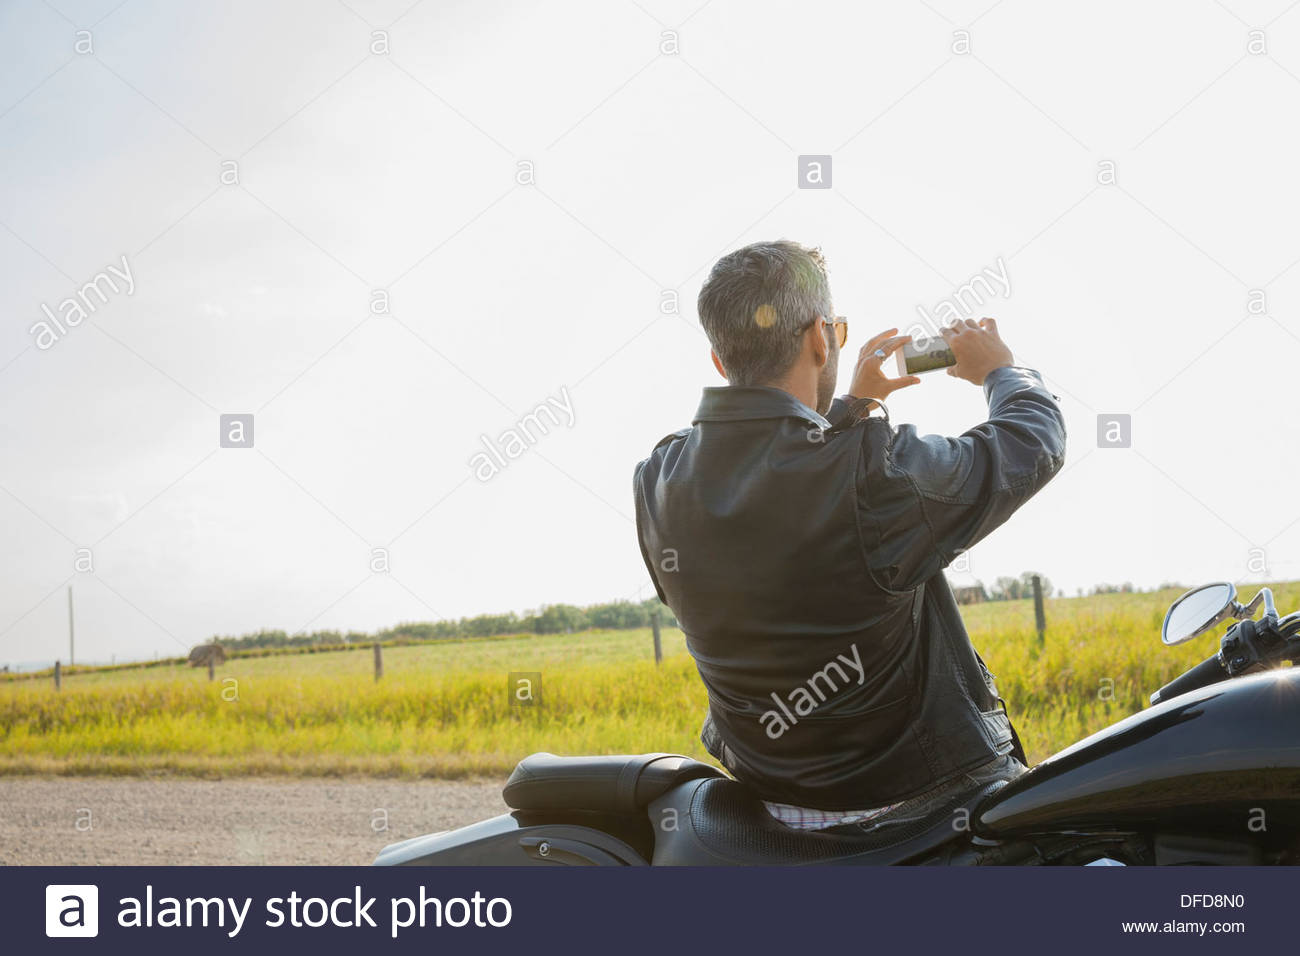 Rear view of biker photographing field during road trip - Stock Image